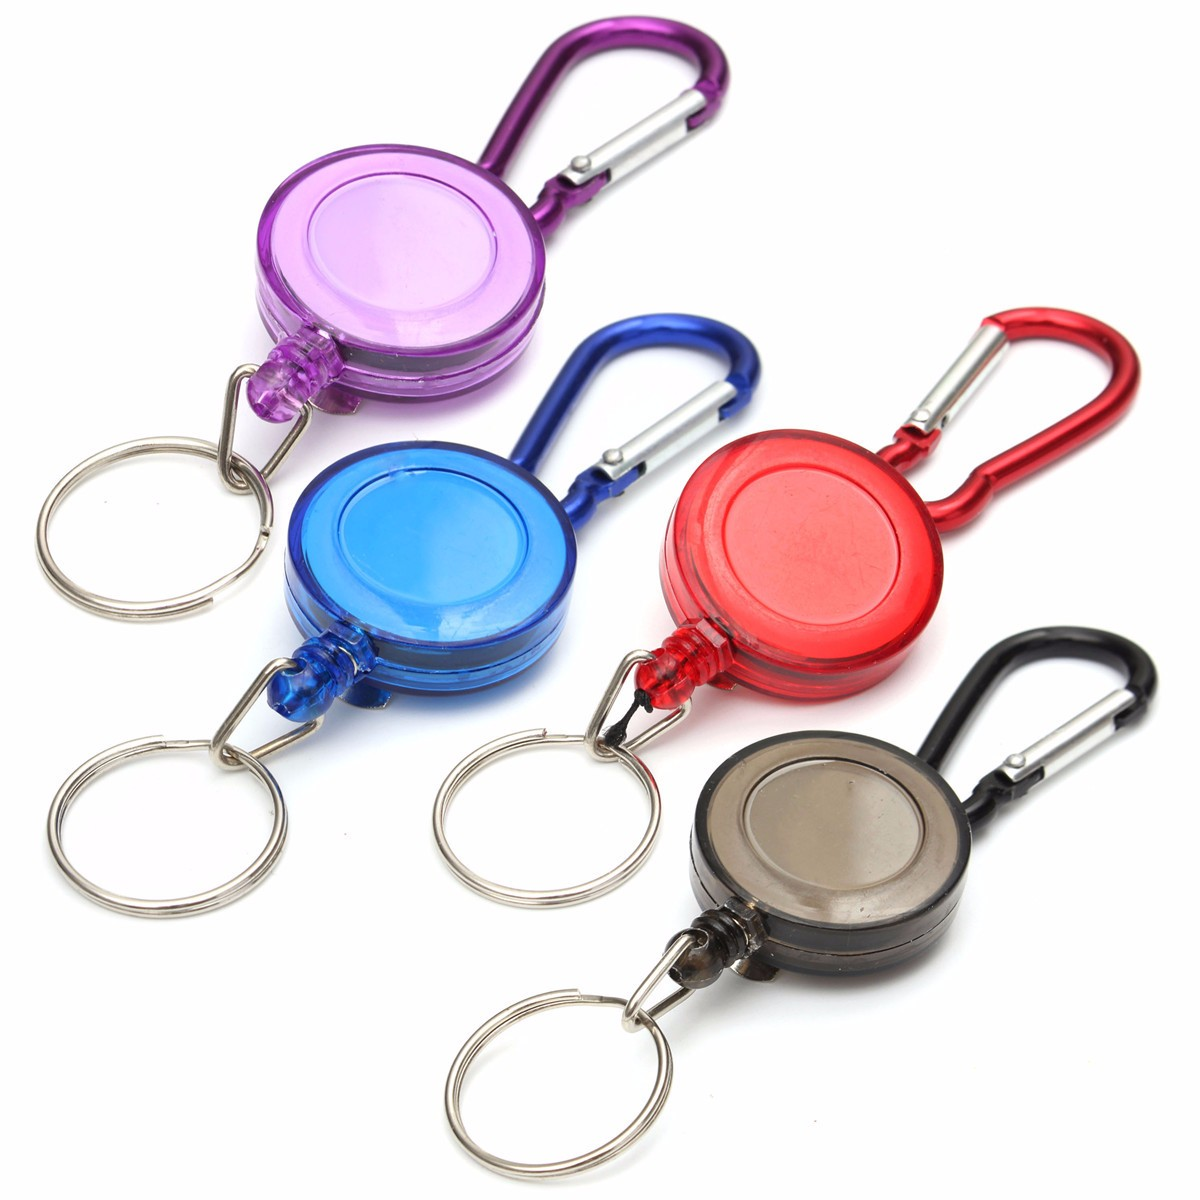 BADGE REEL RETRACTABLE RECOIL FLOWER SKI PASS ID CARD HOLDER KEY CHAIN 5 COLOURS